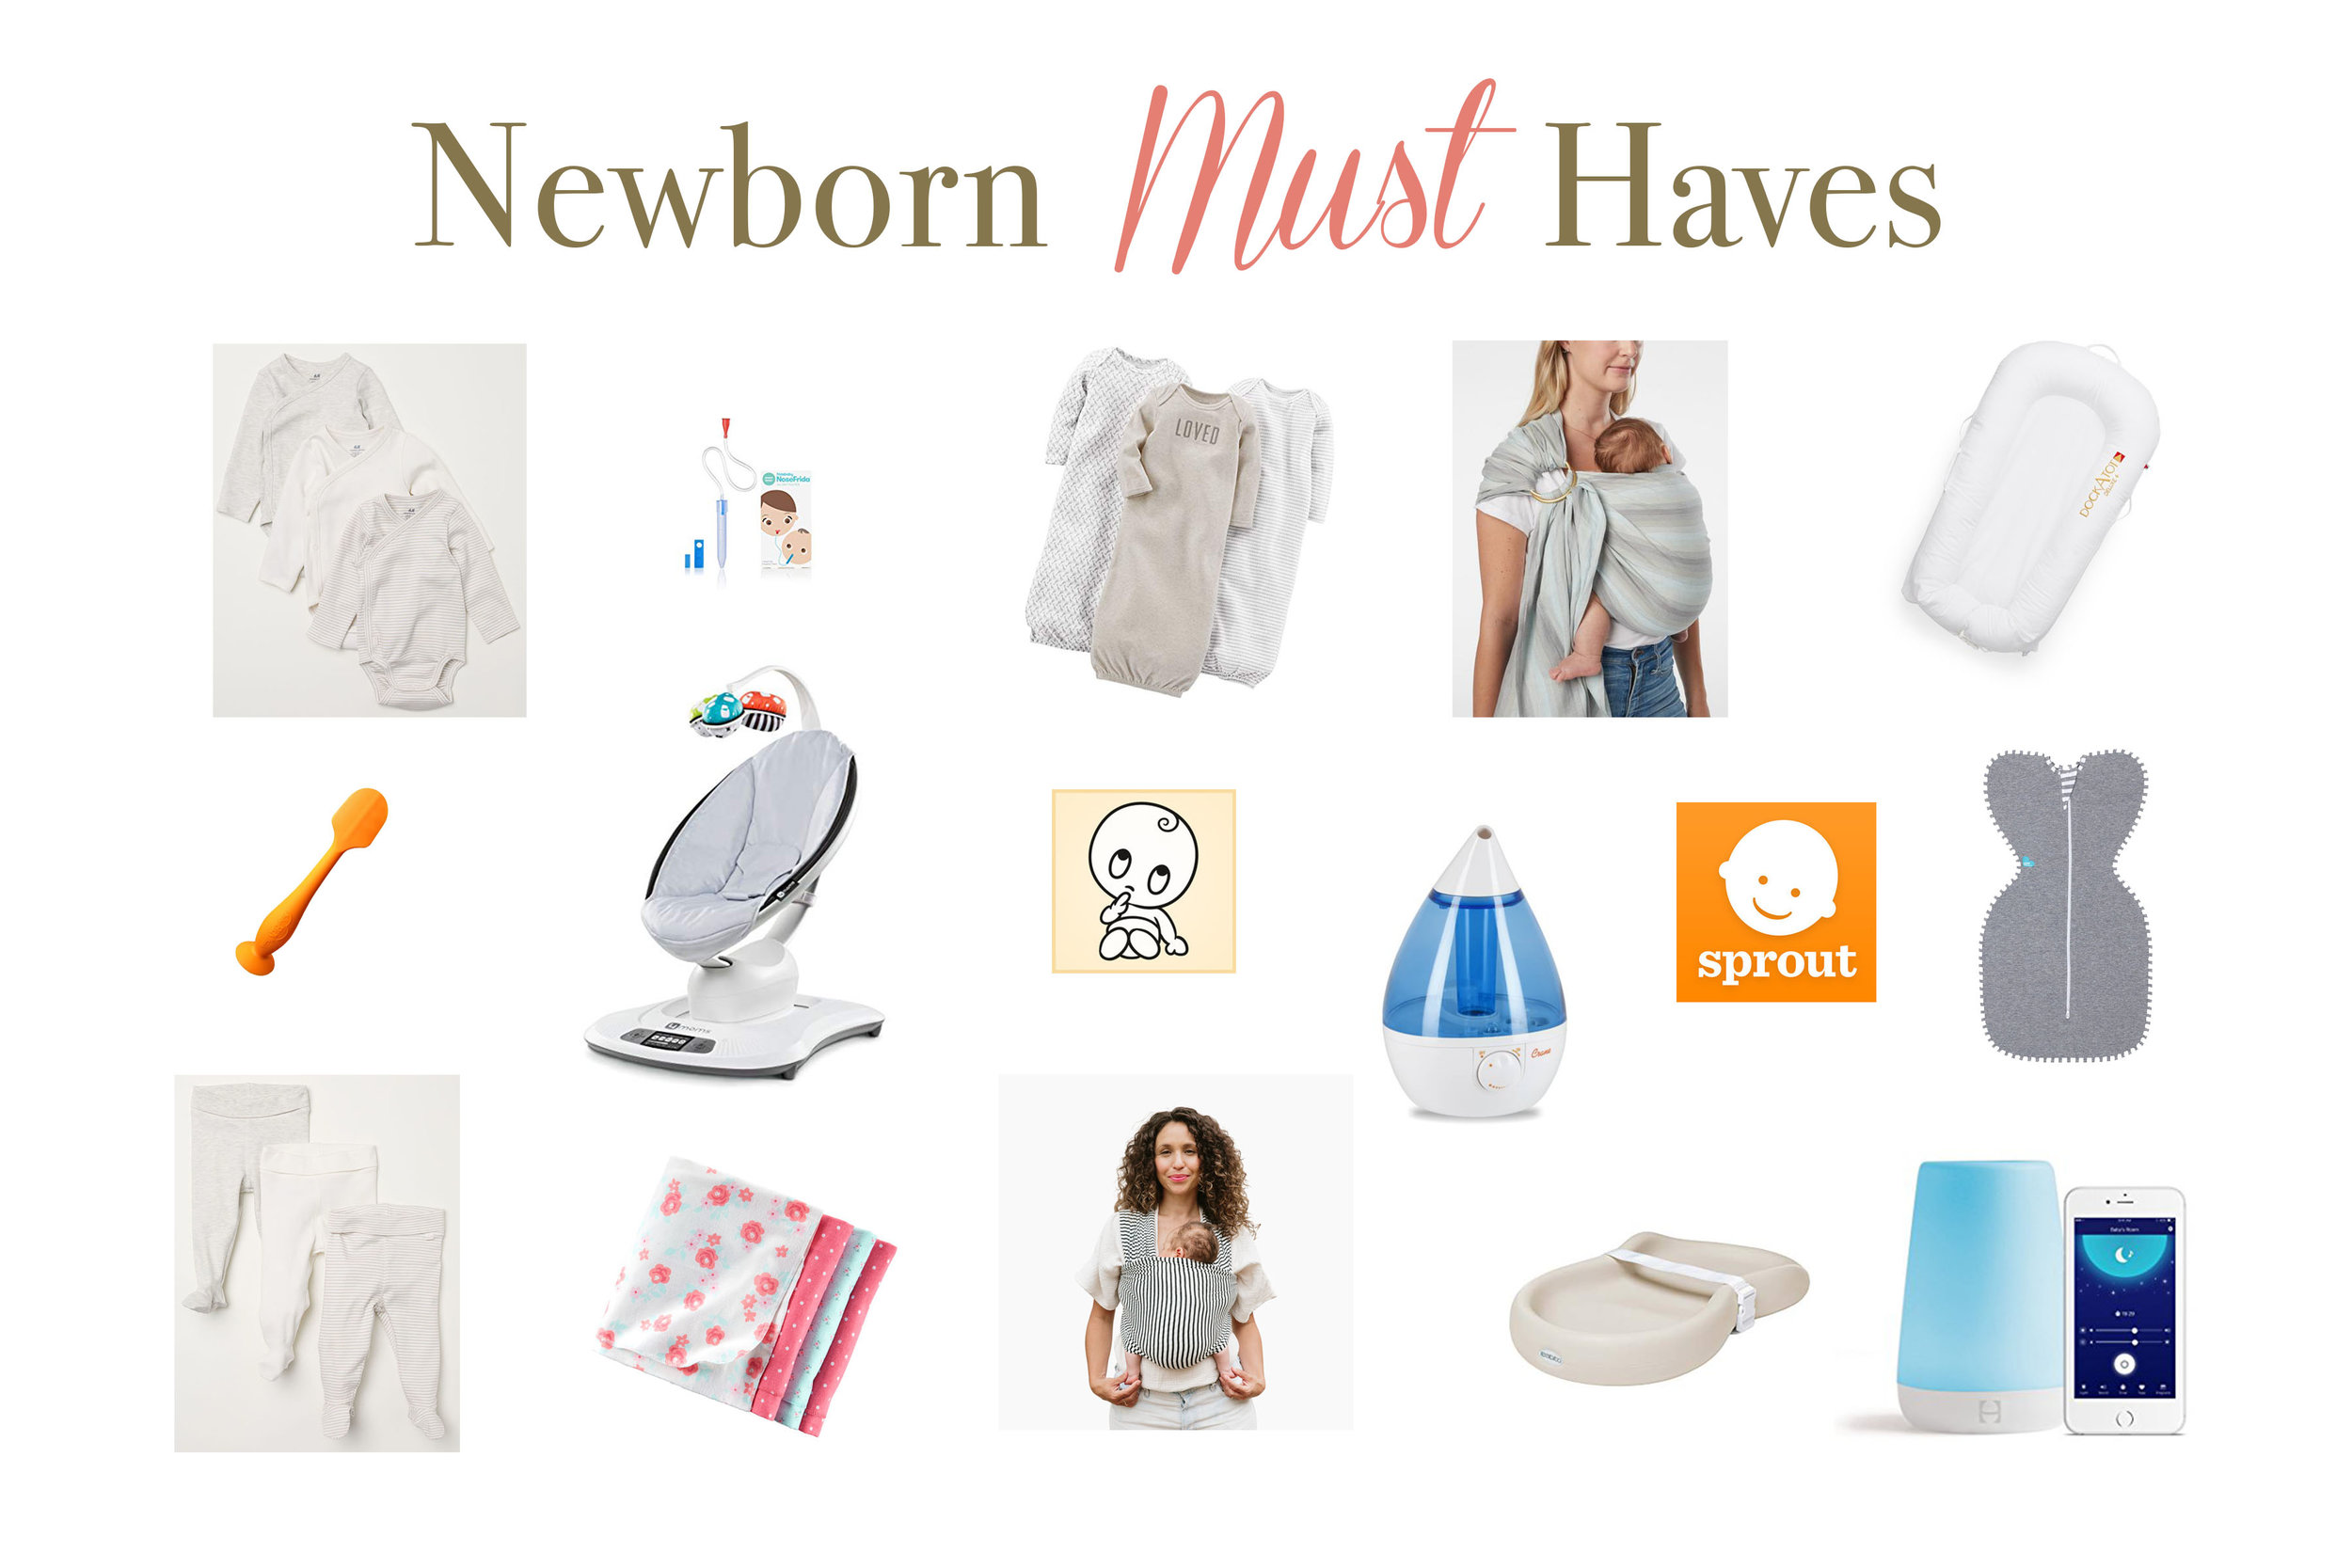 Newborn Must Haves.jpg